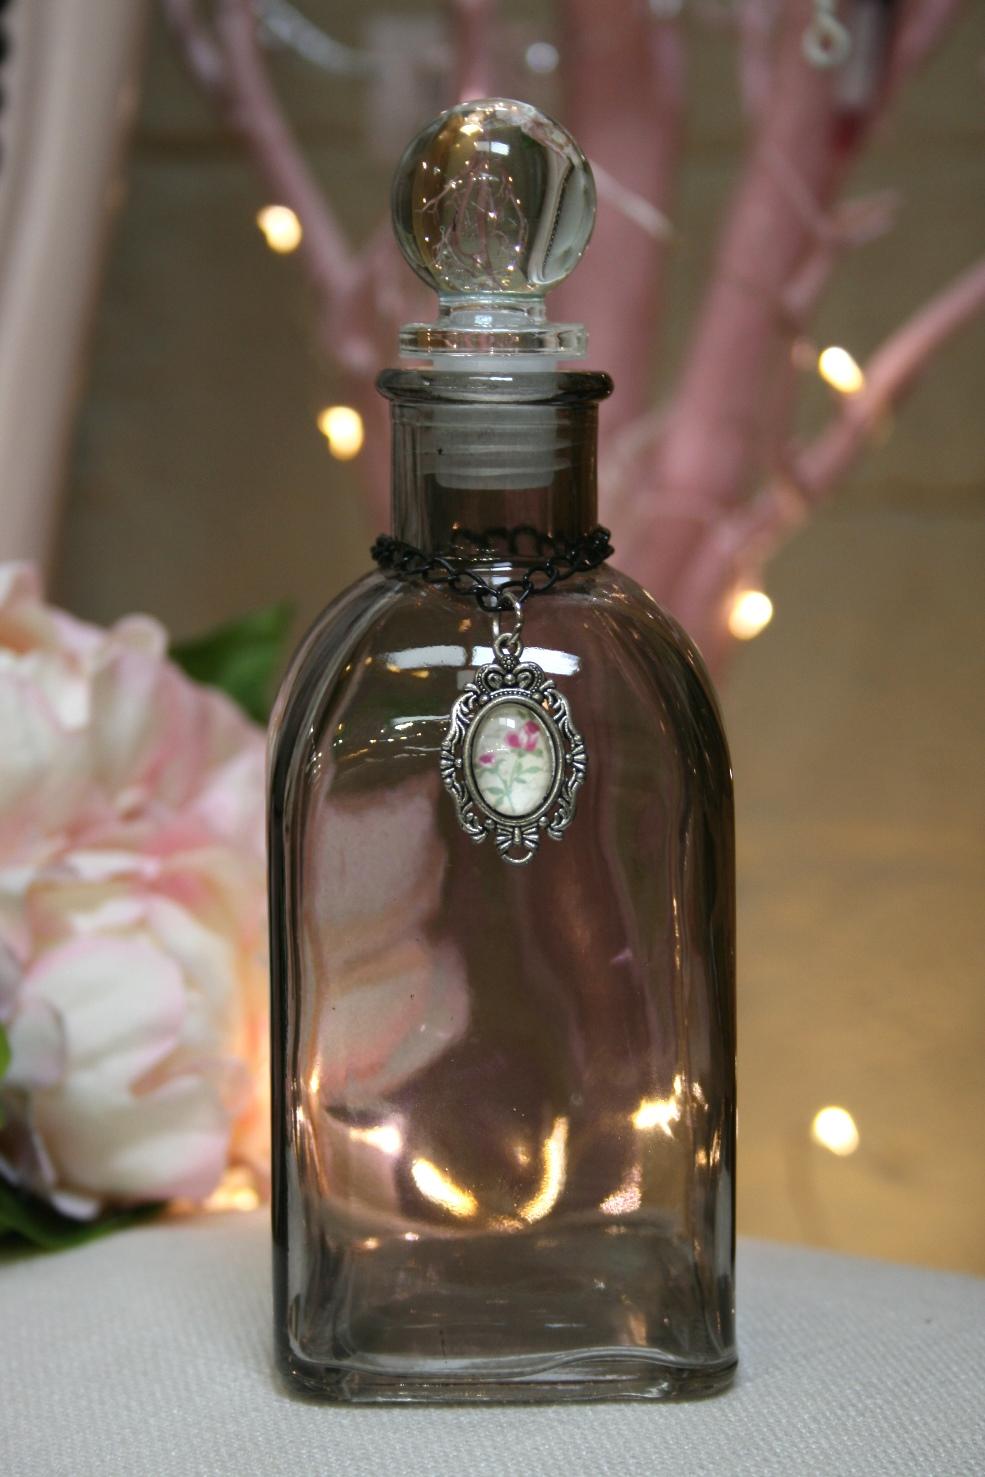 Glass Bottle - €11.00